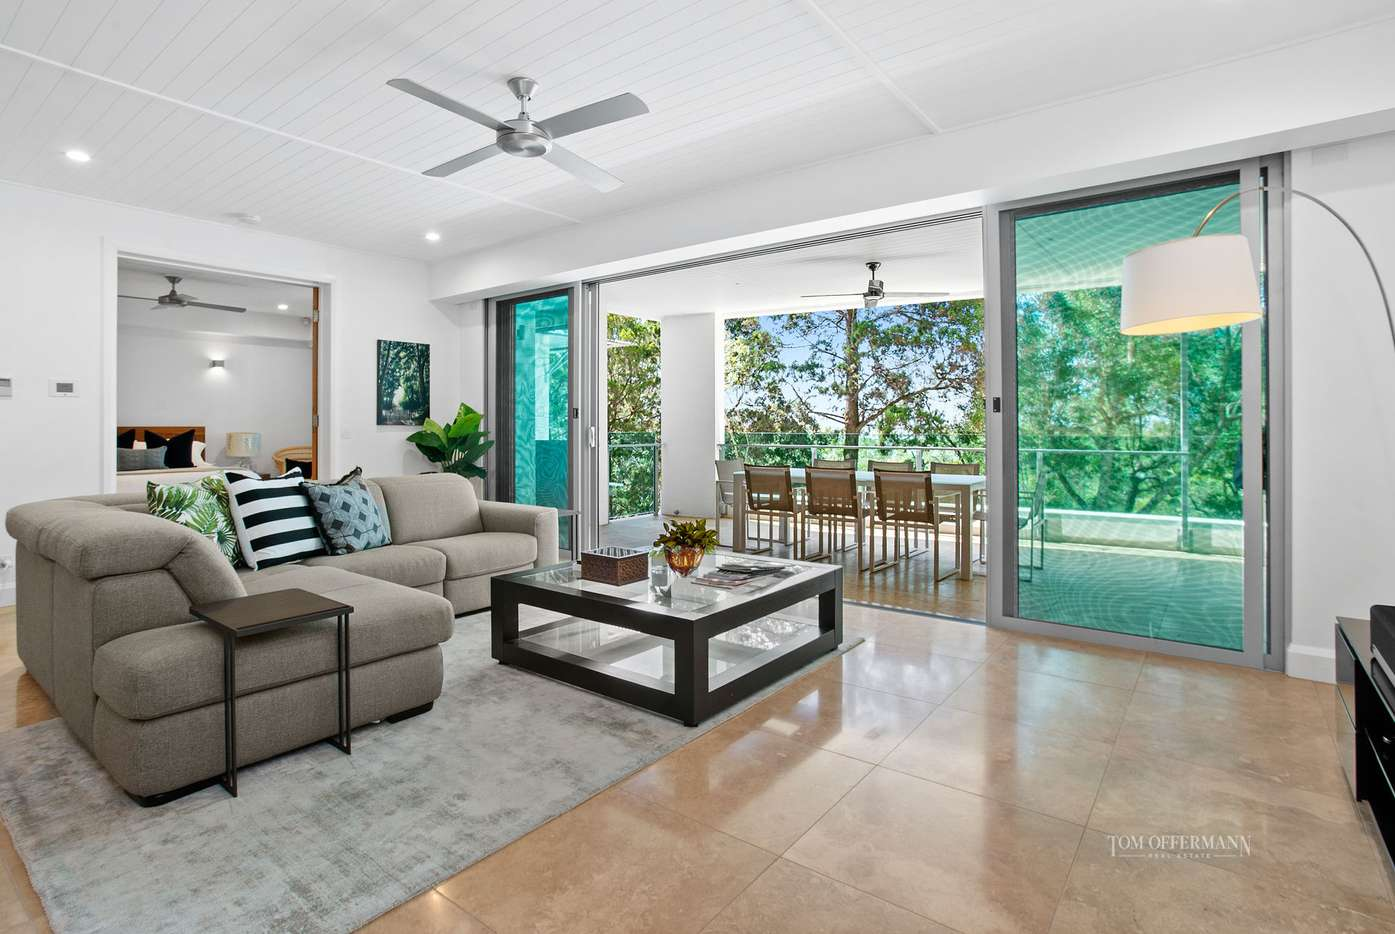 Main view of Homely unit listing, 6/6 Serenity Close, Noosa Heads, QLD 4567